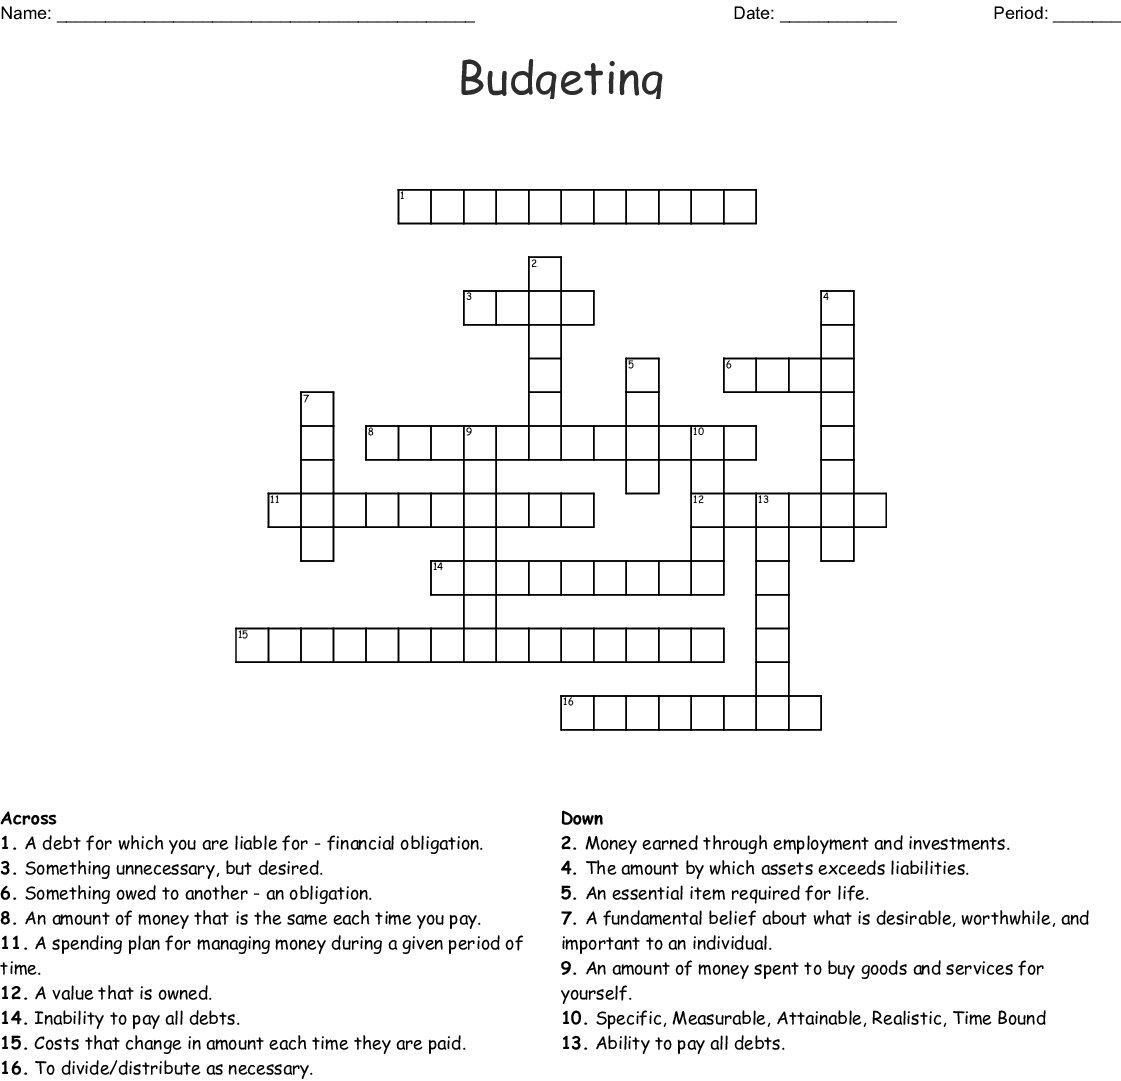 Chapter 3 Budgeting Crossword